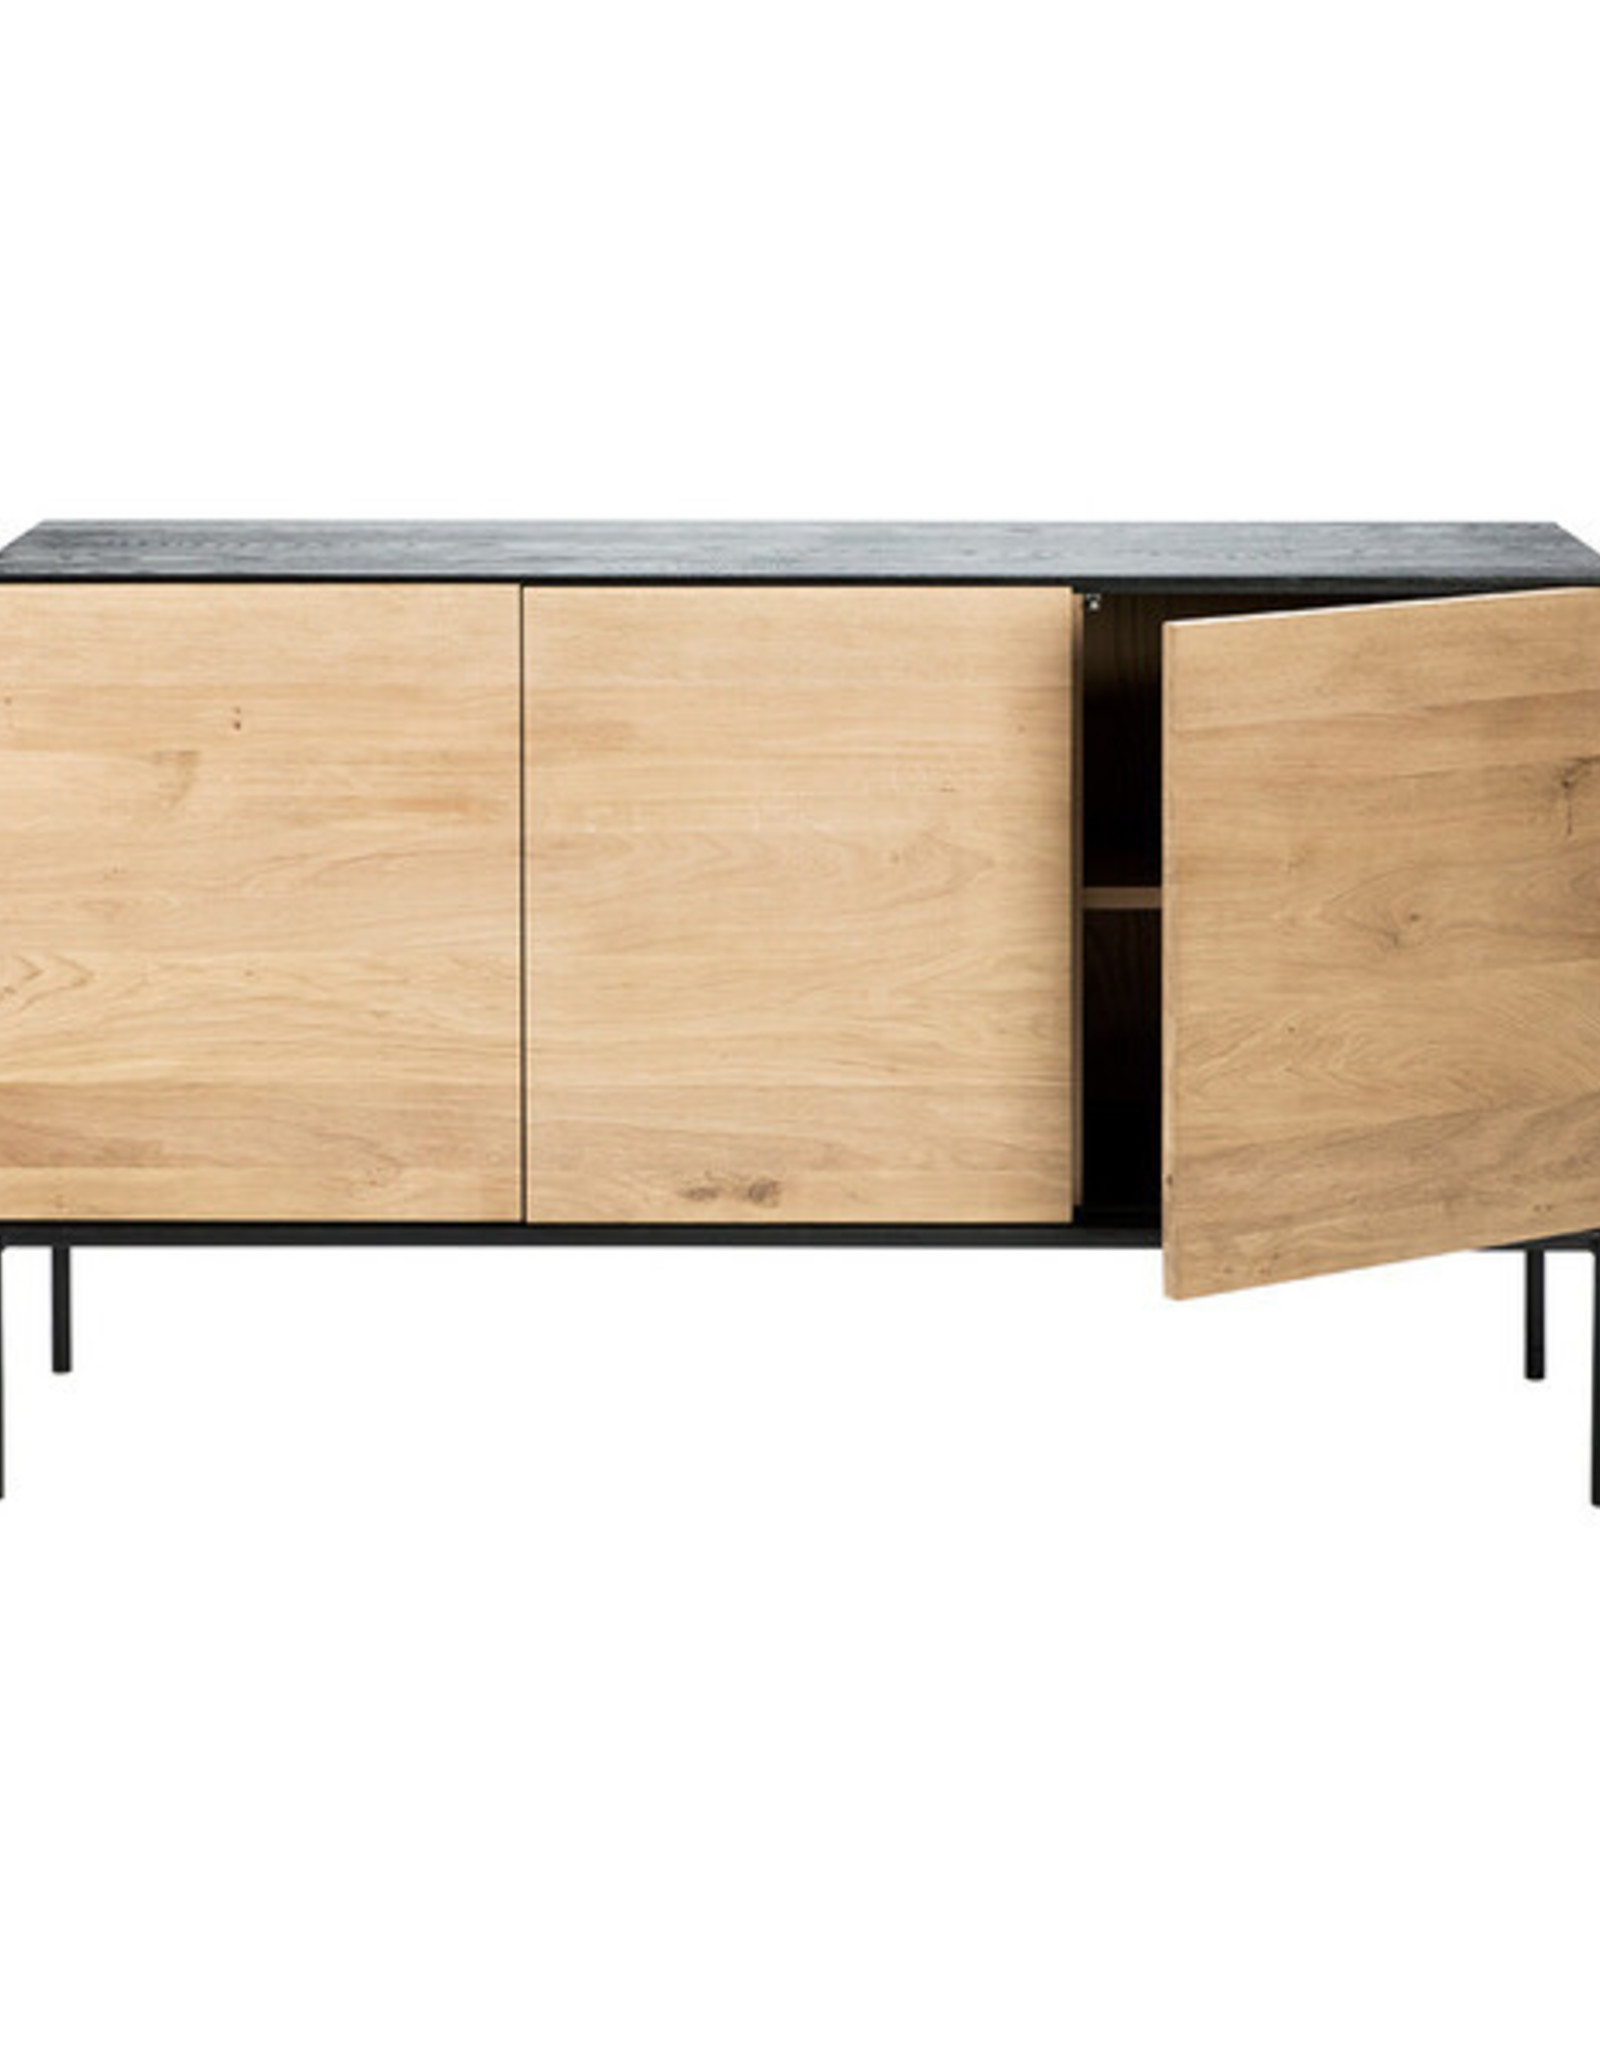 Ethnicraft USA LLC Blackbird Sideboard 3 Door